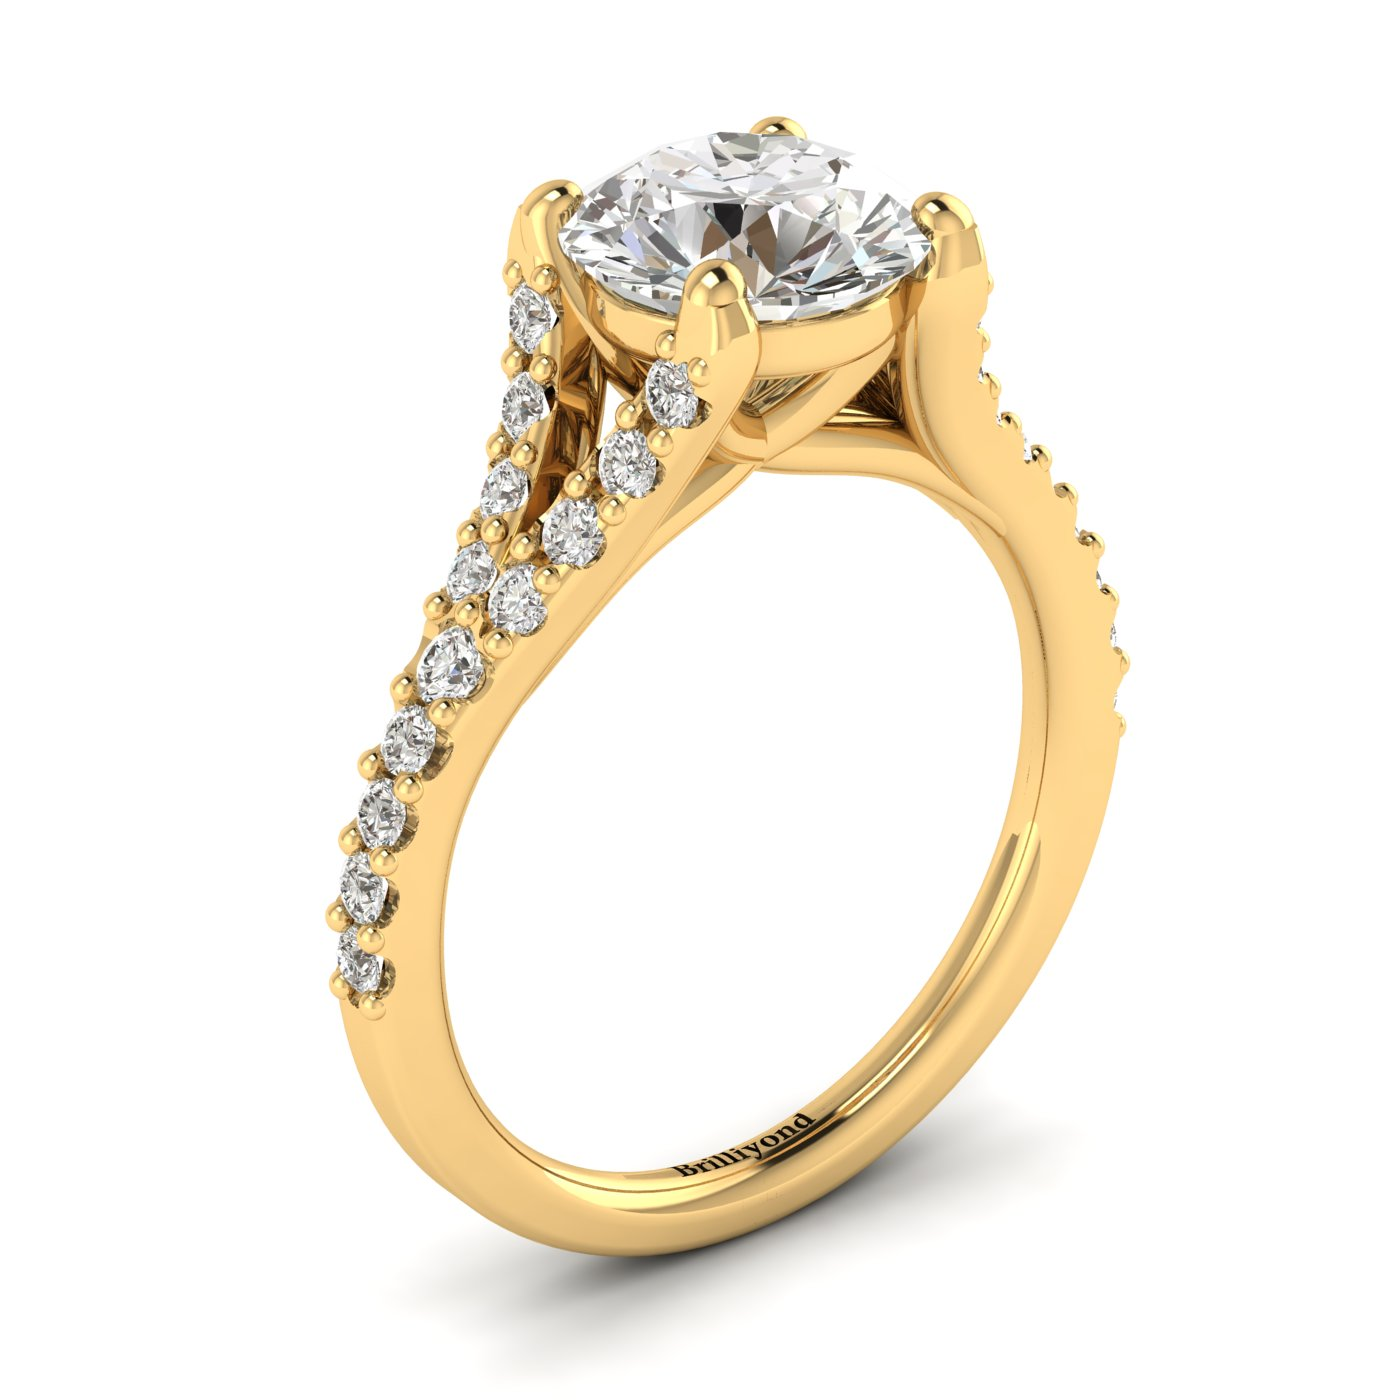 18k yellow gold Ceylon sapphire engagement ring for sale online Australia-wide.